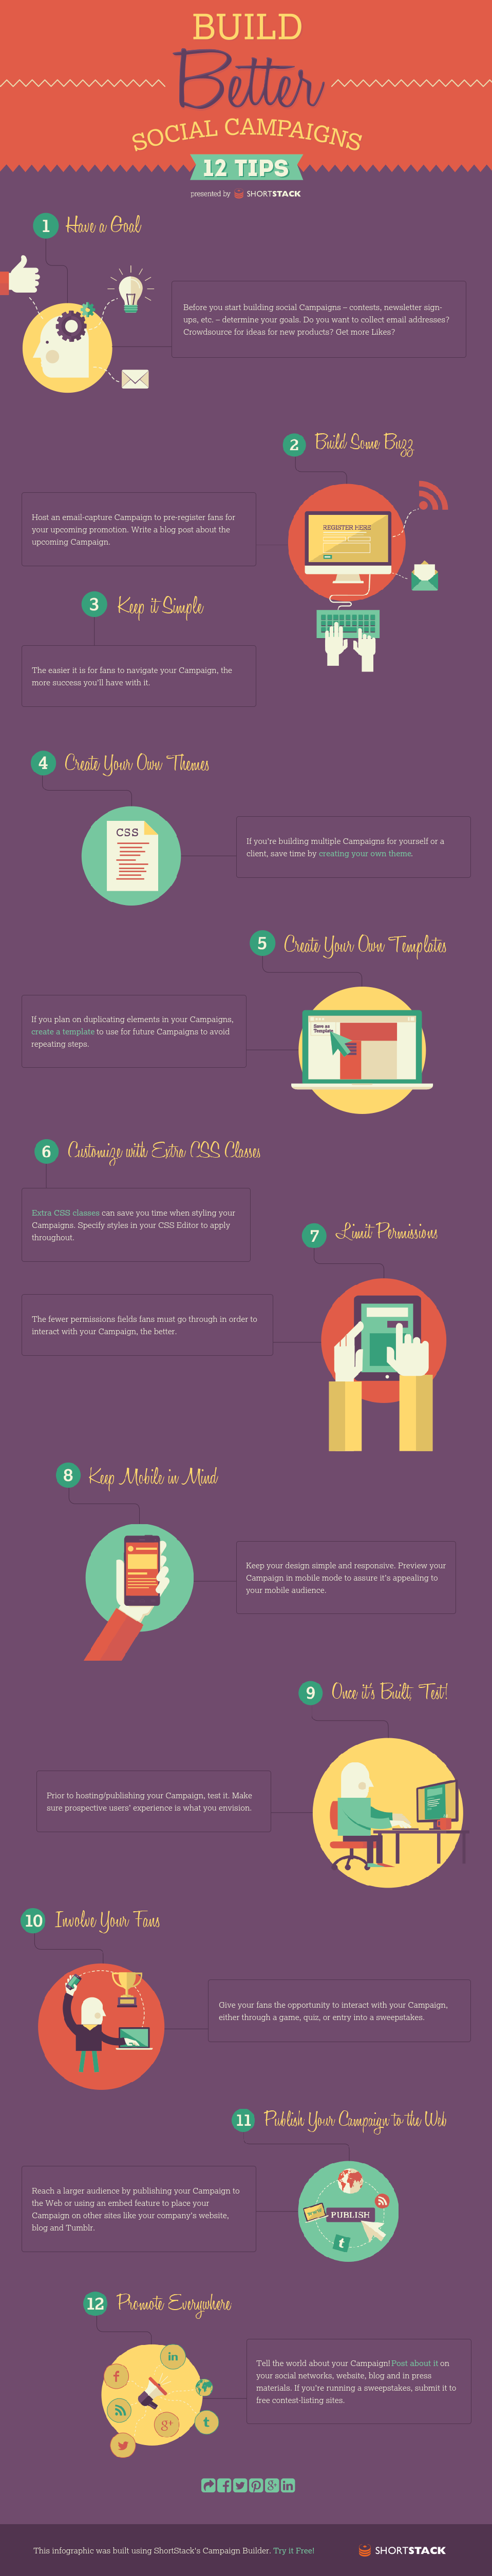 social campaigns infographic